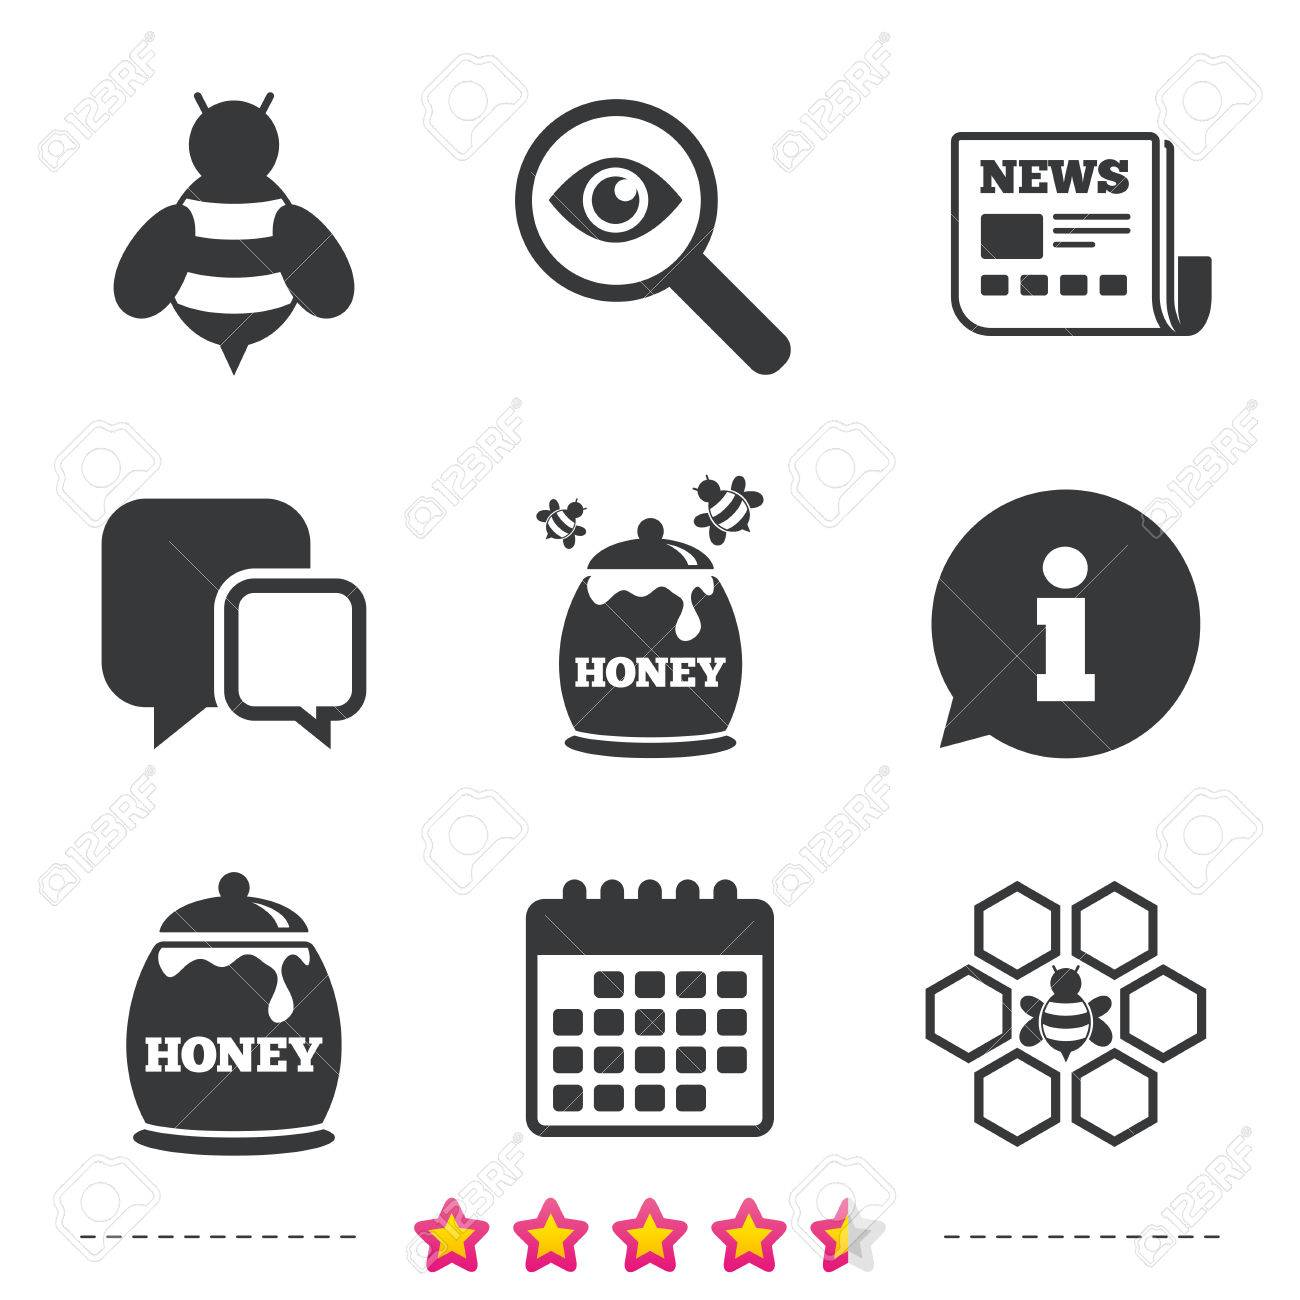 Honey icon. Honeycomb cells with bees symbol. Sweet natural food signs.  Newspaper,